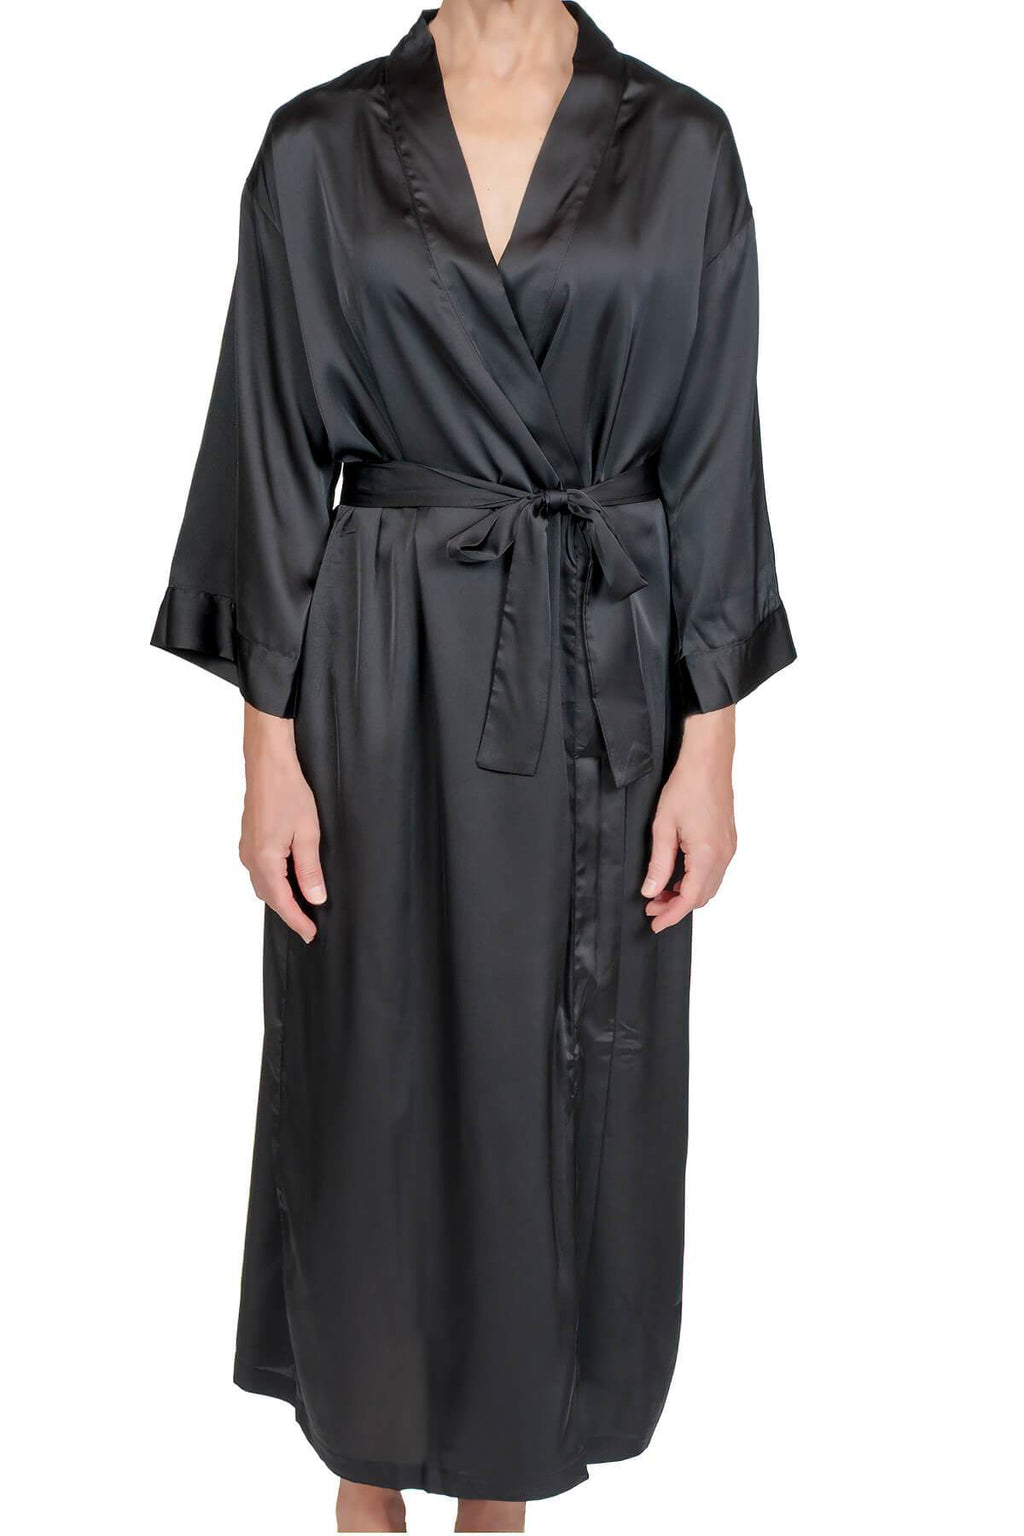 Raeanna Long Black Robe Mystique Intimates